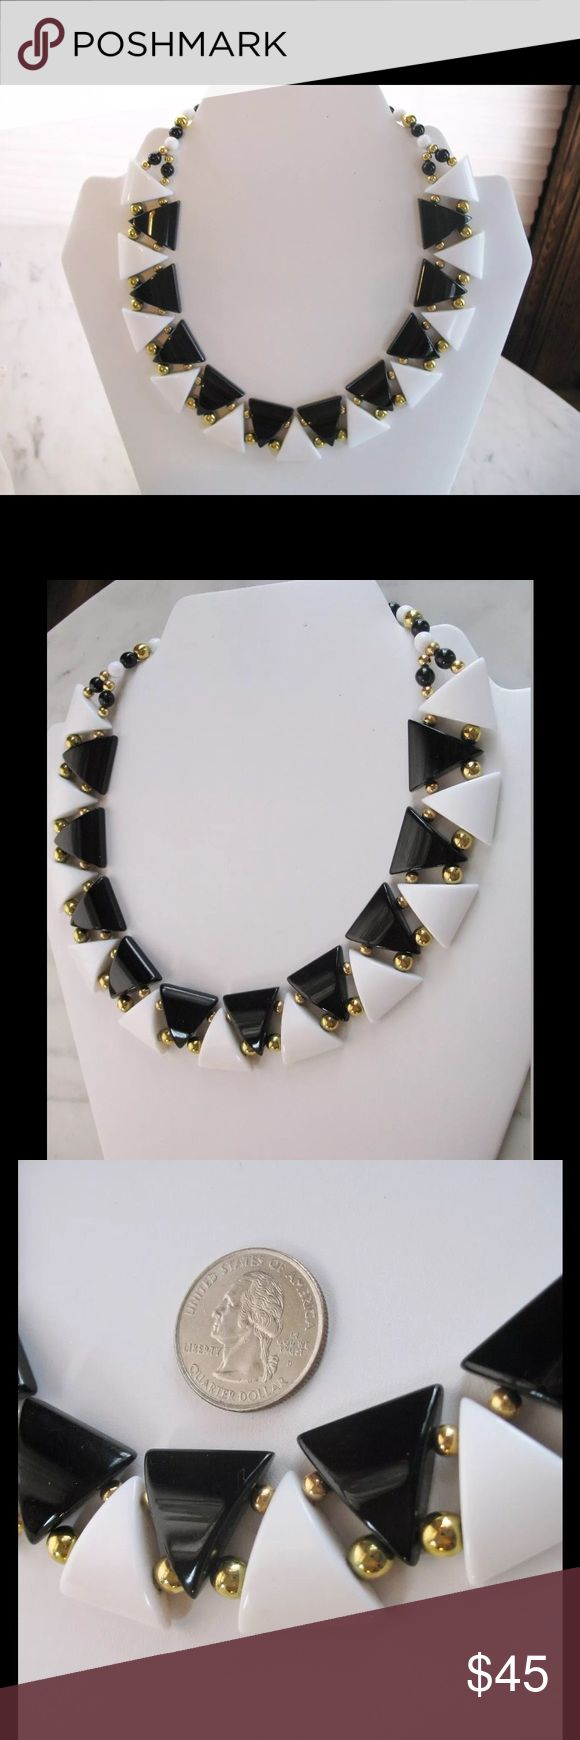 Vintage Retro Napier Necklace Modern Design This listing is for a vintage 1980's  Napier choker necklace. This necklace is from 1980's. The design of this choker is very cool.  It has a very MODERN look with the classic Black, White & gold color combination. This necklace measures approximately 16 inches long, 1 inch wide.  It has FOLD OVER CLASP signed NAPIER. It's Lucite & Lightweight.  Necklace is featured on page 598 of Melinda Laird Lewis' book THE NAPIER CO. Defining20th Century…